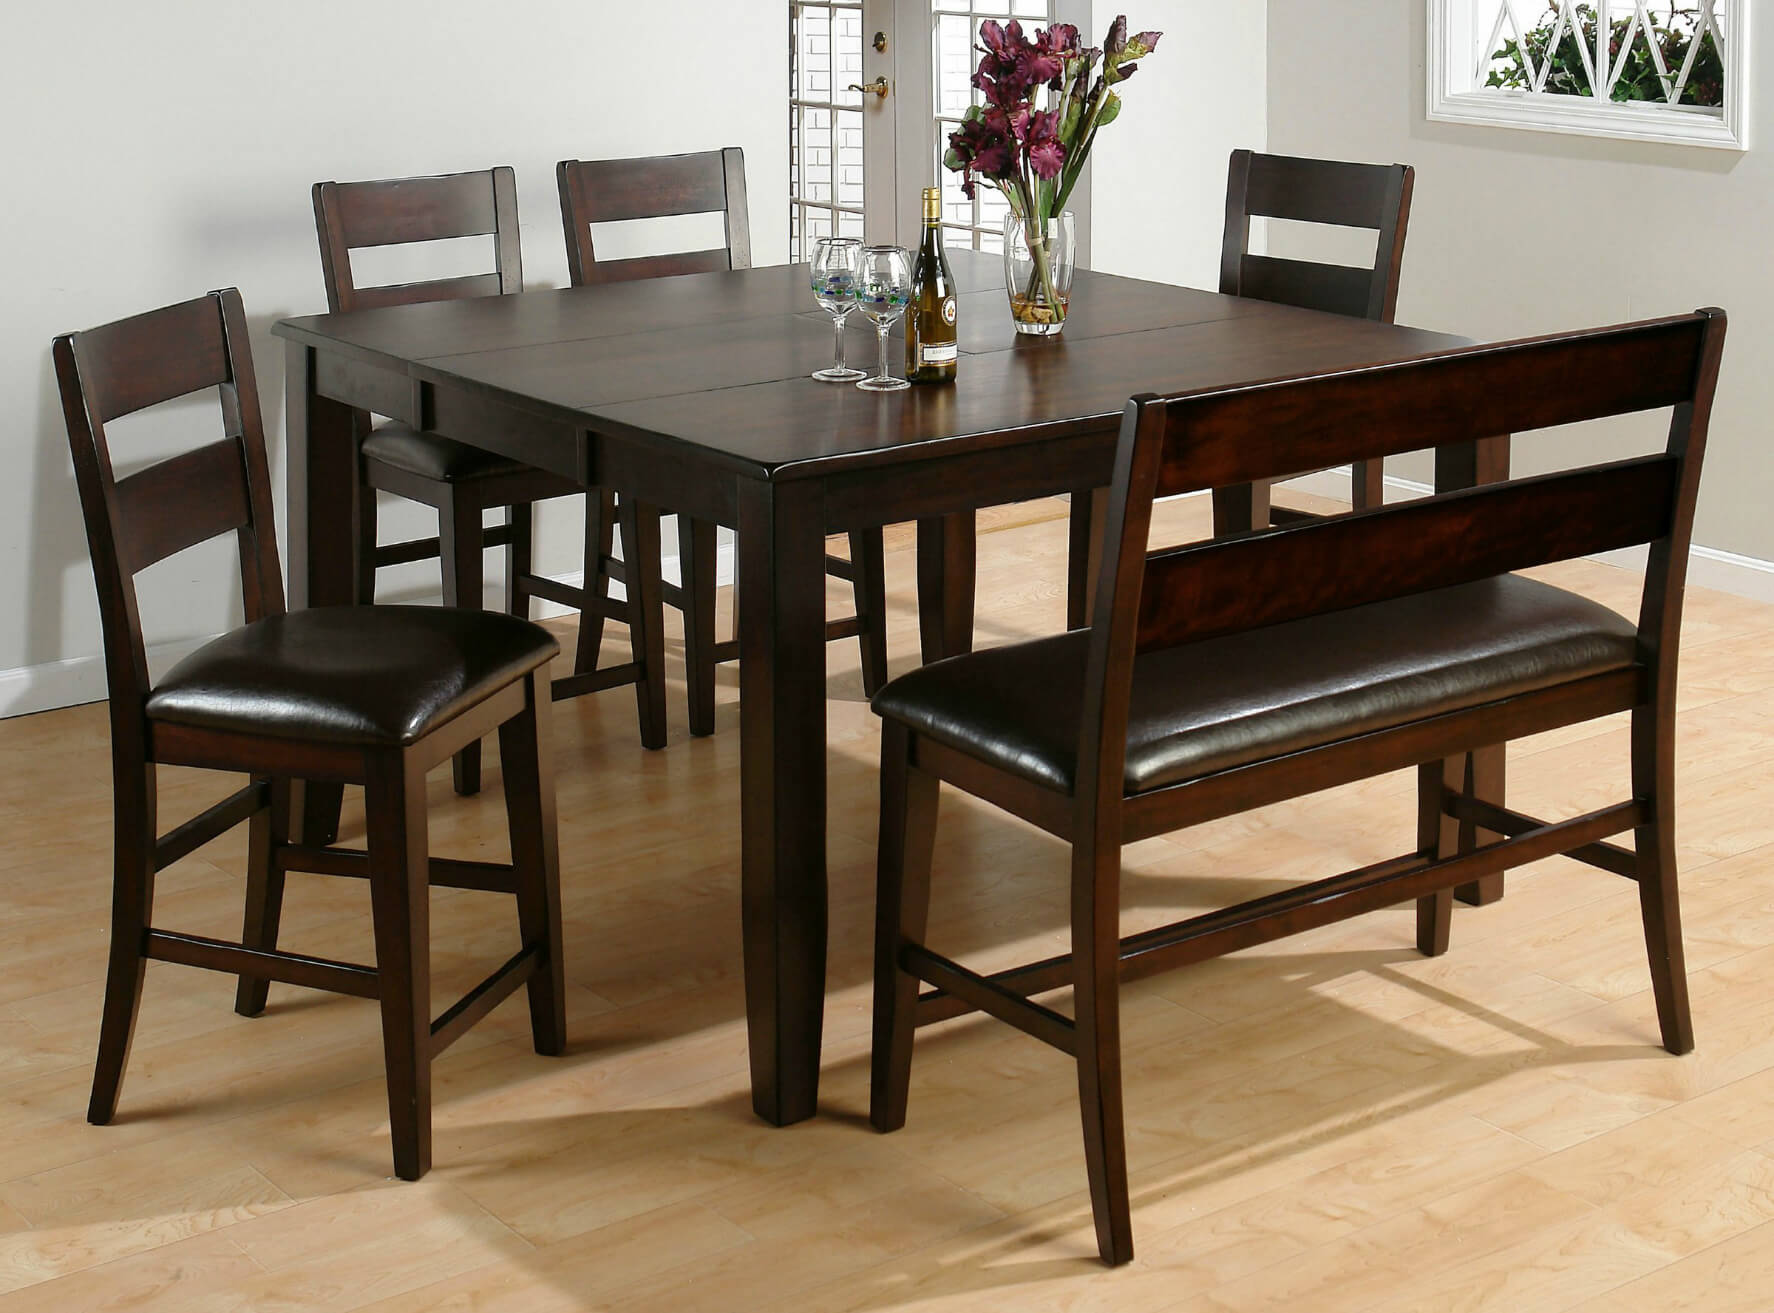 dining set with bench and chairs plastic sheet for under high chair 26 big small room sets seating